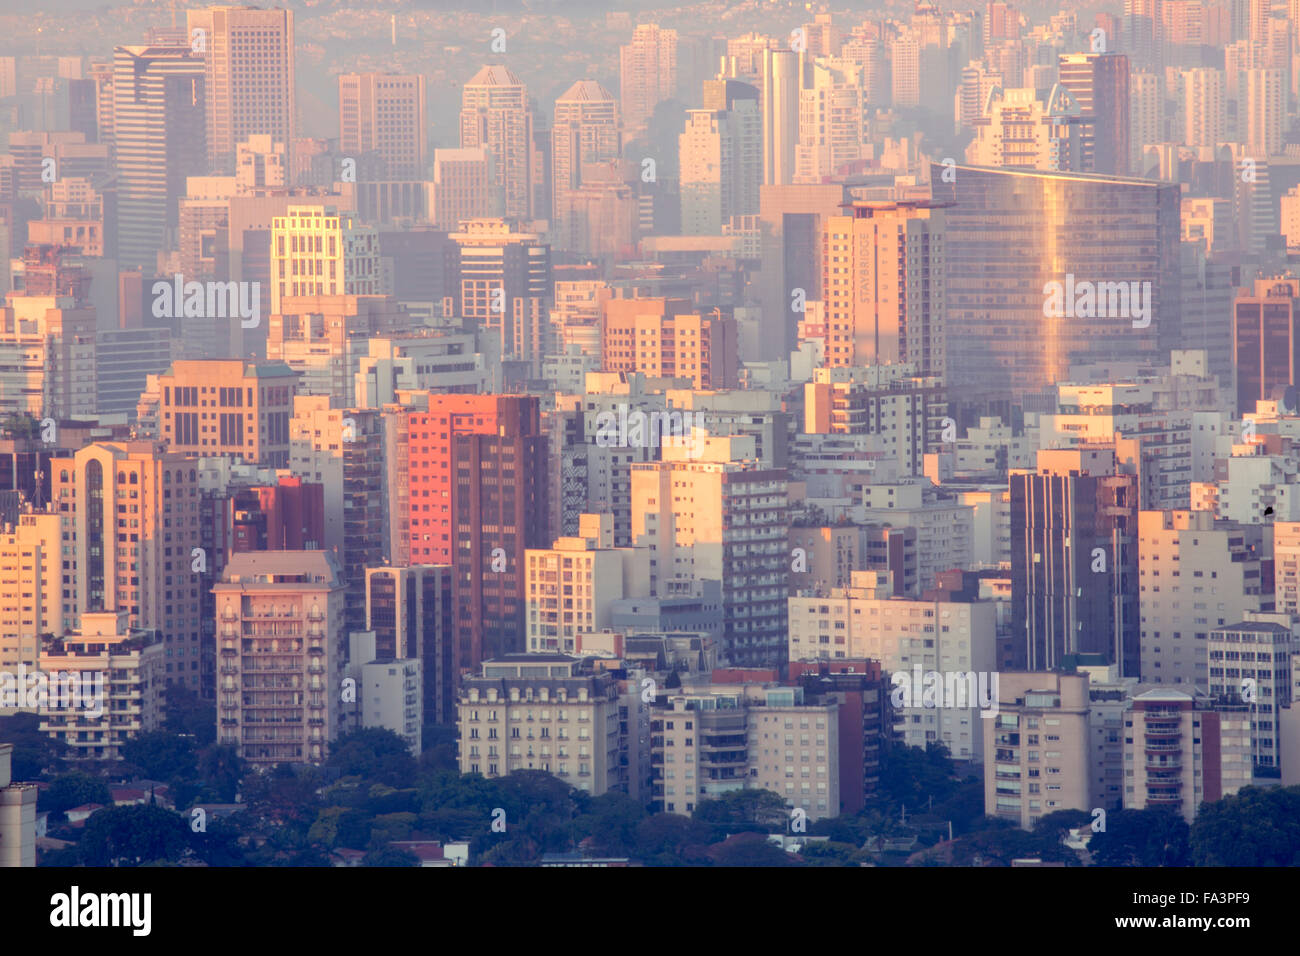 Sao Paulo skyline in the city centre, showing business and residential buildings - Stock Image